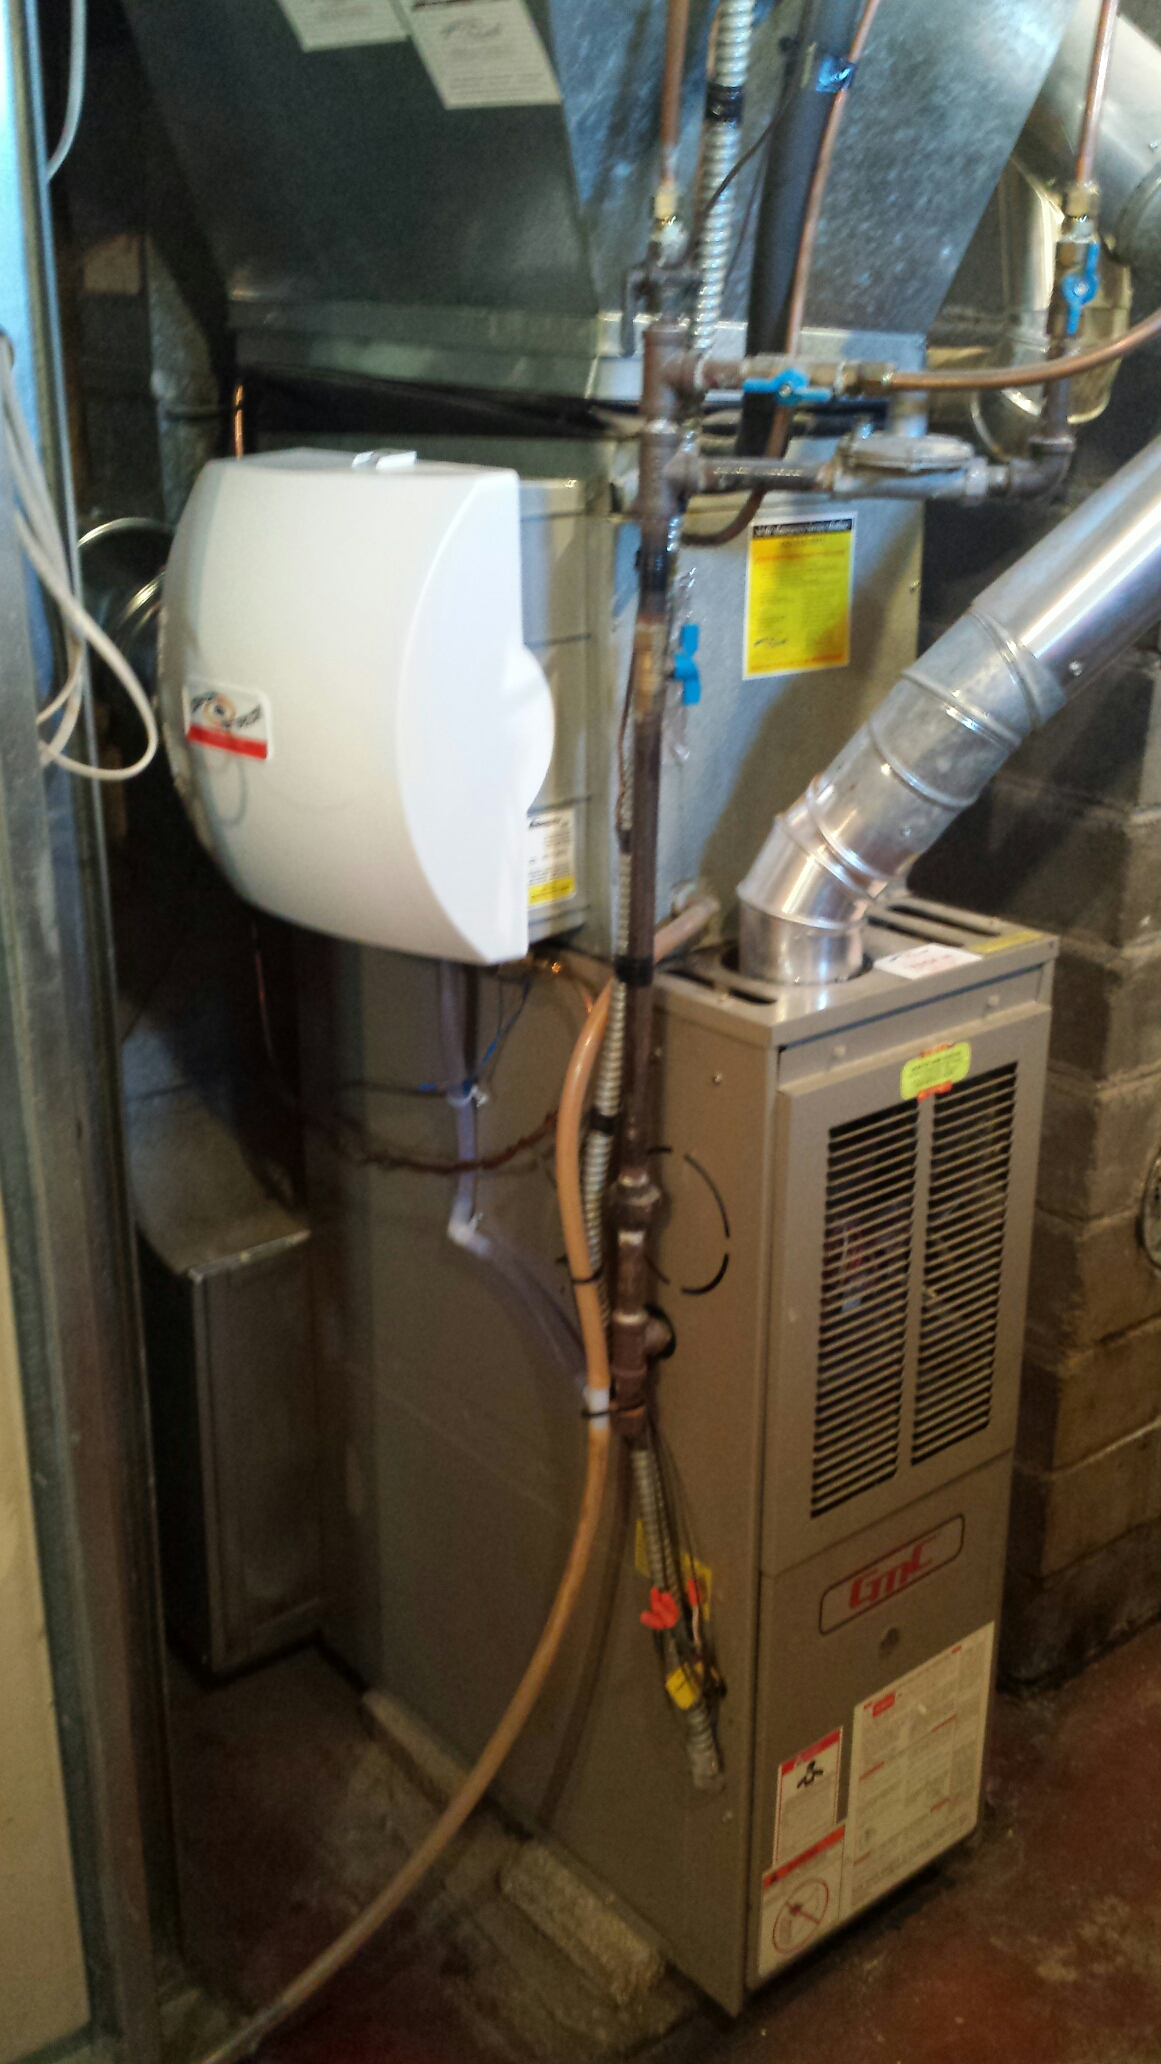 Anoka, MN - Installed a humidifier